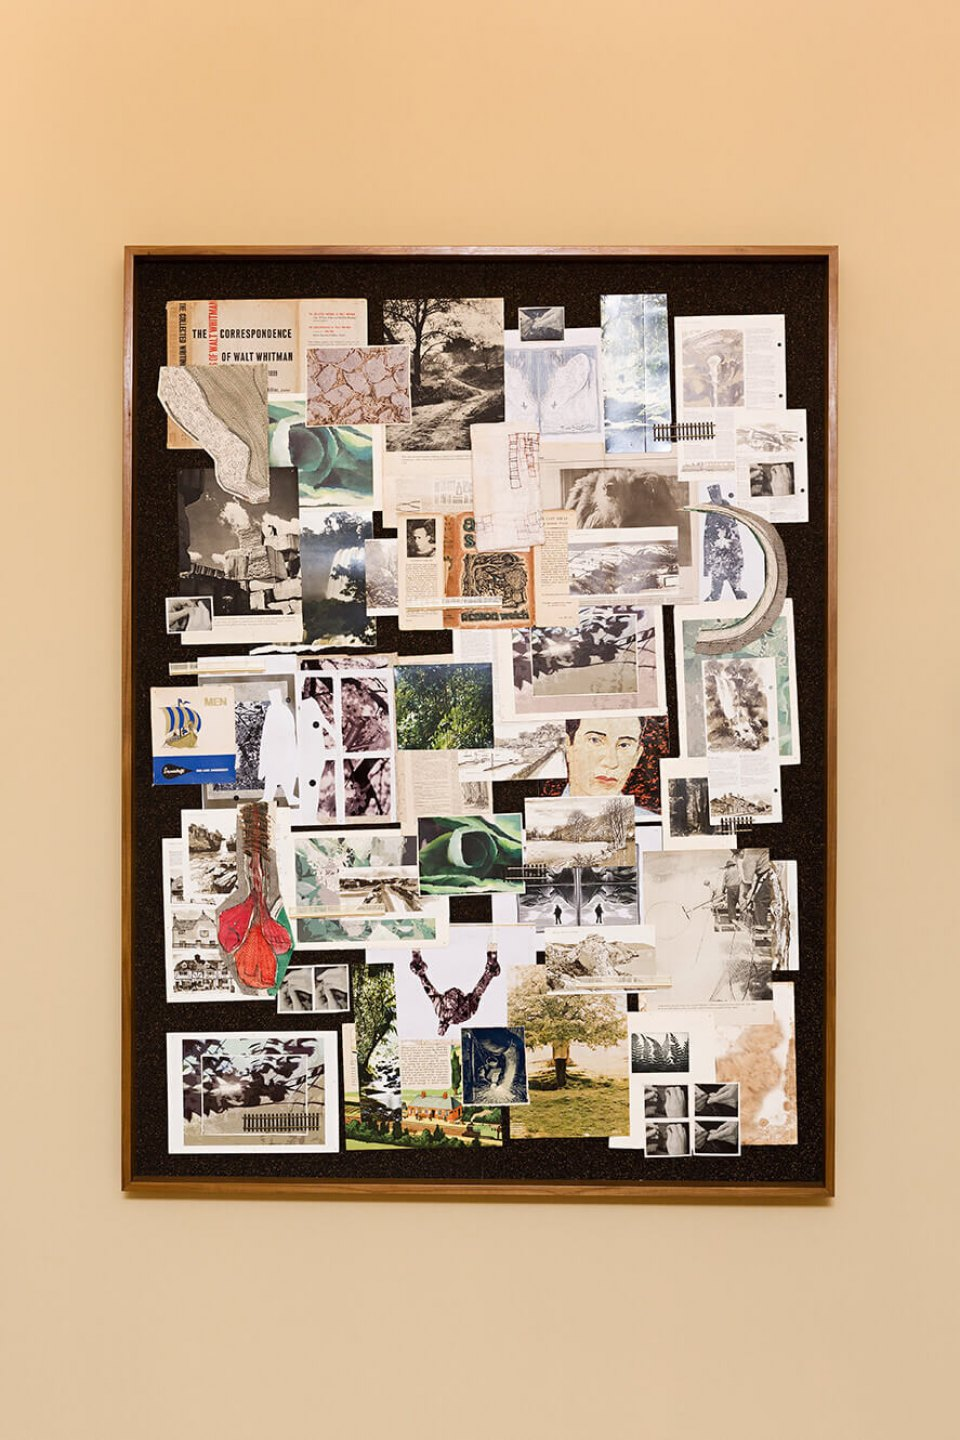 f.marquespeteado,&nbsp;<em>Storyboard Sean,</em> 2002/2014, print on paper and fabric, graphite on paper, photographs, newspaper and files, various plastic objects on cork framed, 163 × 122 × 8 cm - Mendes Wood DM